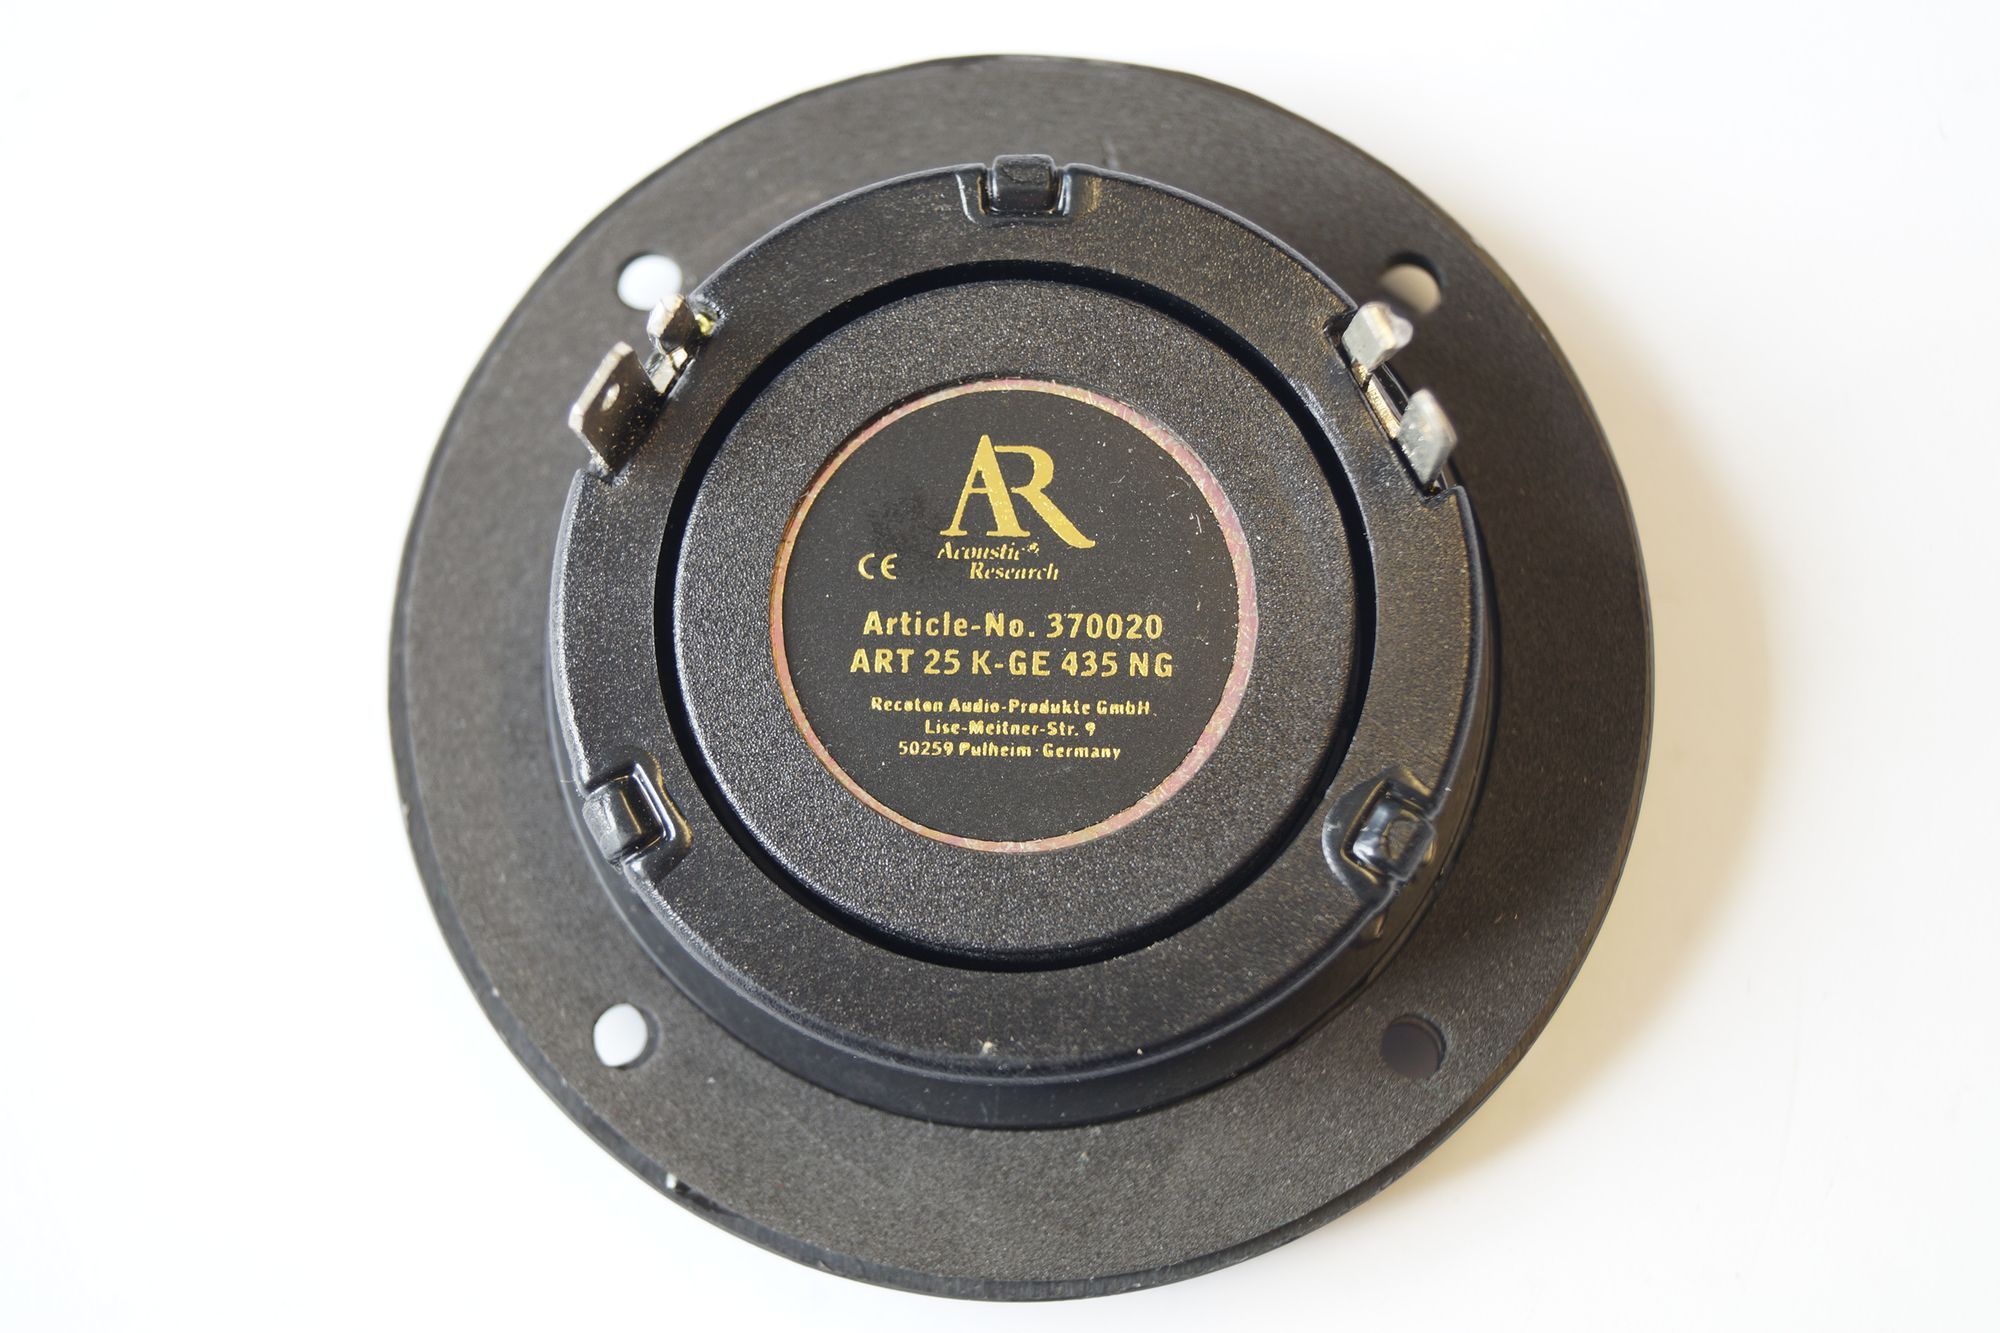 Acoustic Research ART 25 K-GE 435 NG 25 mm Hochton-Kalotte 1 Paar – Bild 2